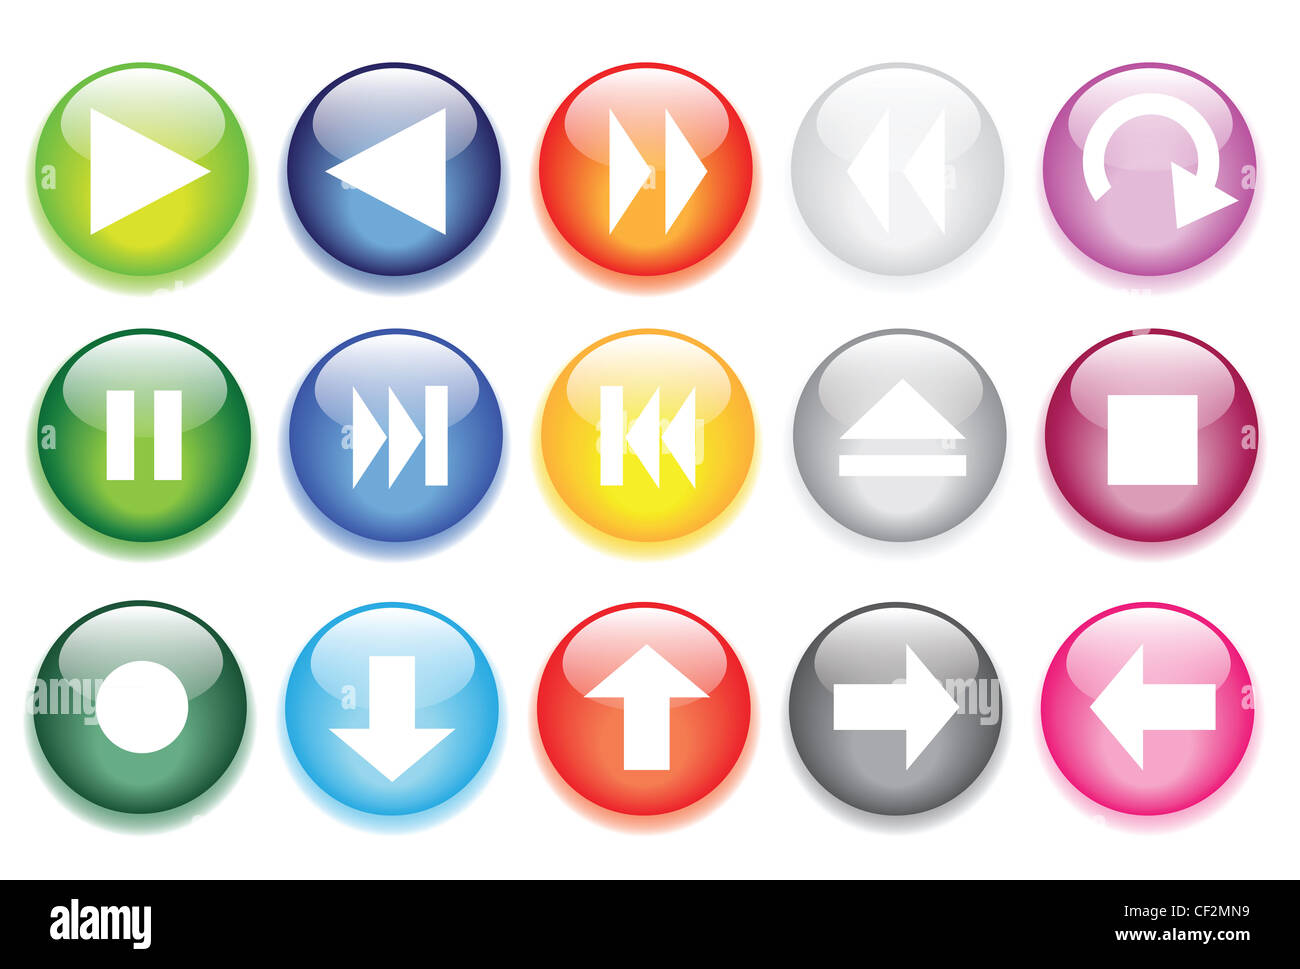 vector illustrations of glossy glass buttons for icons. - Stock Image